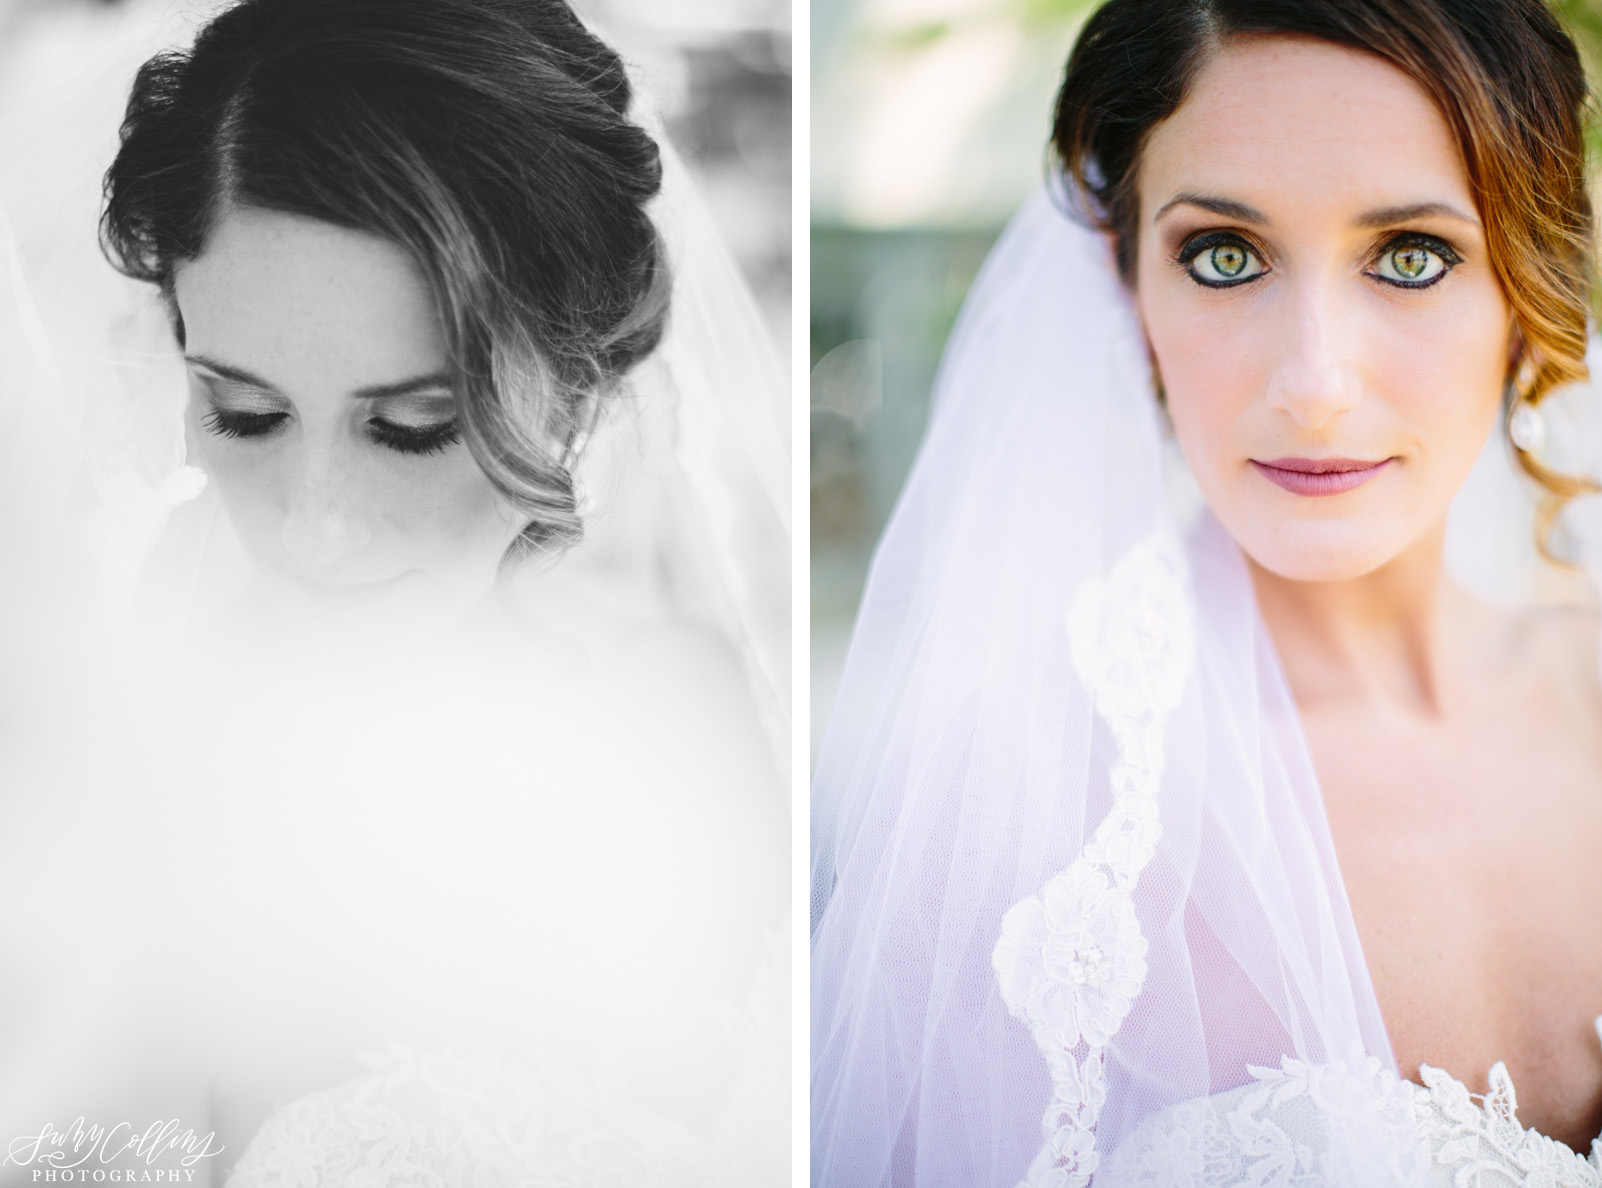 poses, indoor, romantic, spring, light and airy, natural light, ideas, passion, artistic, creative, inspiration, editorial, art, lighting, love, Knoxville, Tennessee, Cherokee country club, vibrant, colorful, bright, bride, bridal portraits